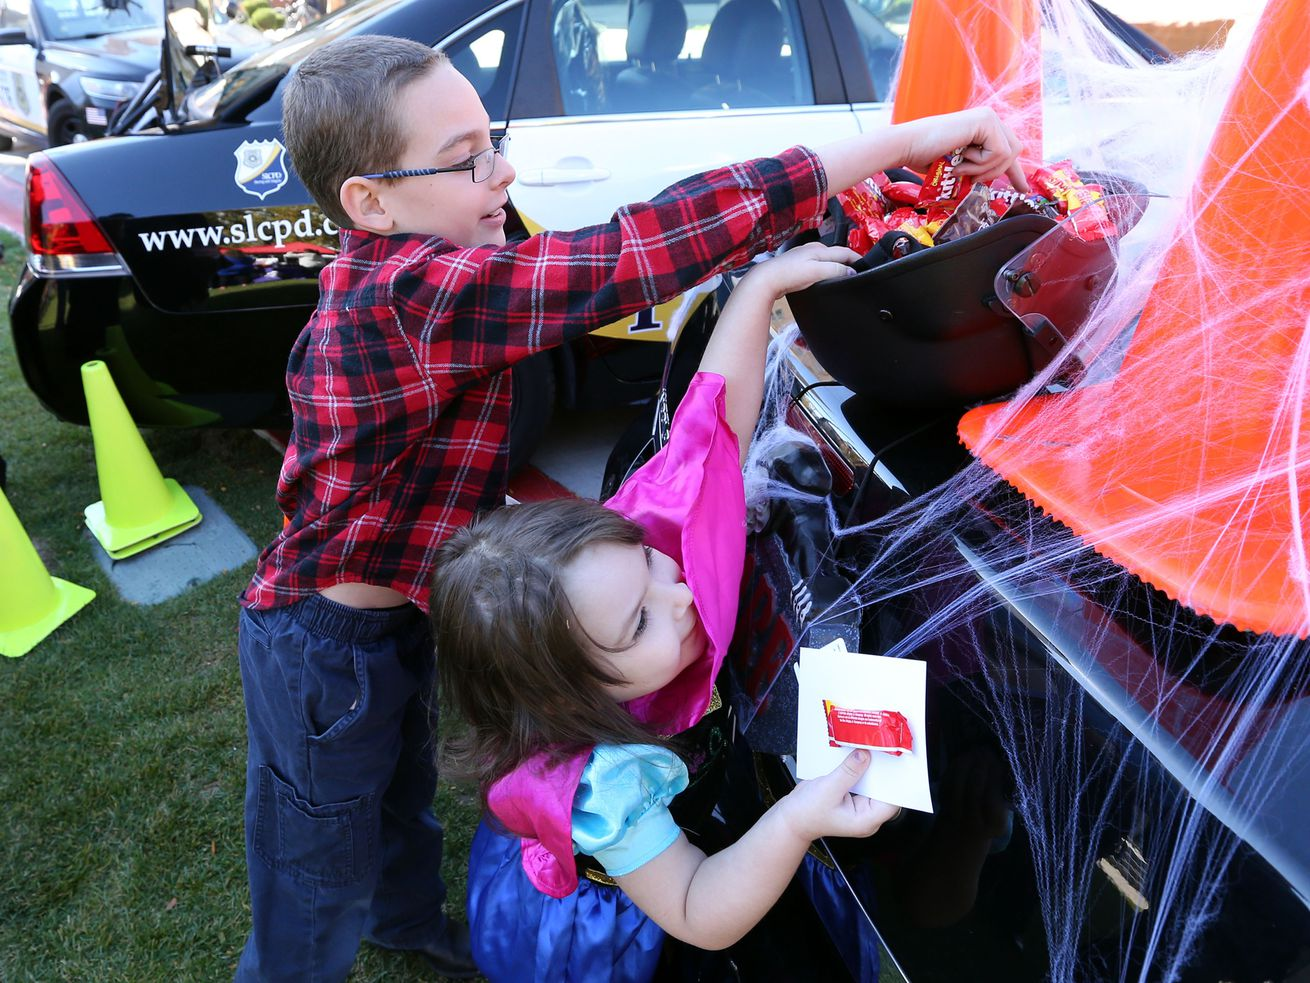 Are overprotective parents ruining Halloween?